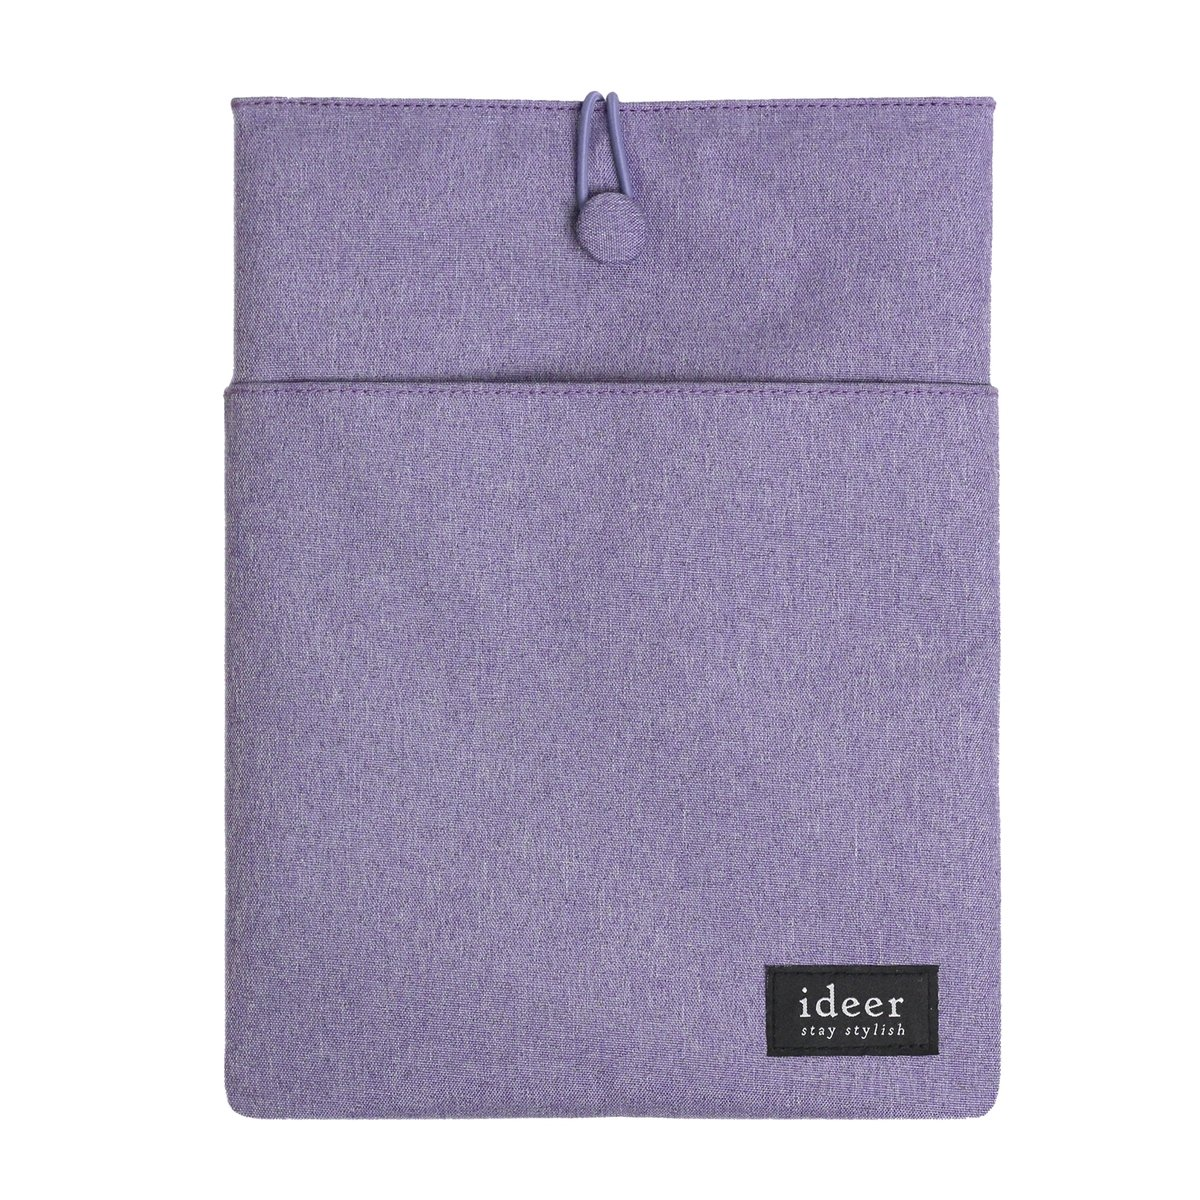 "Ryman Lavender 13"" Protective Laptop Sleeve For 13″ MacBook Air or Pro"